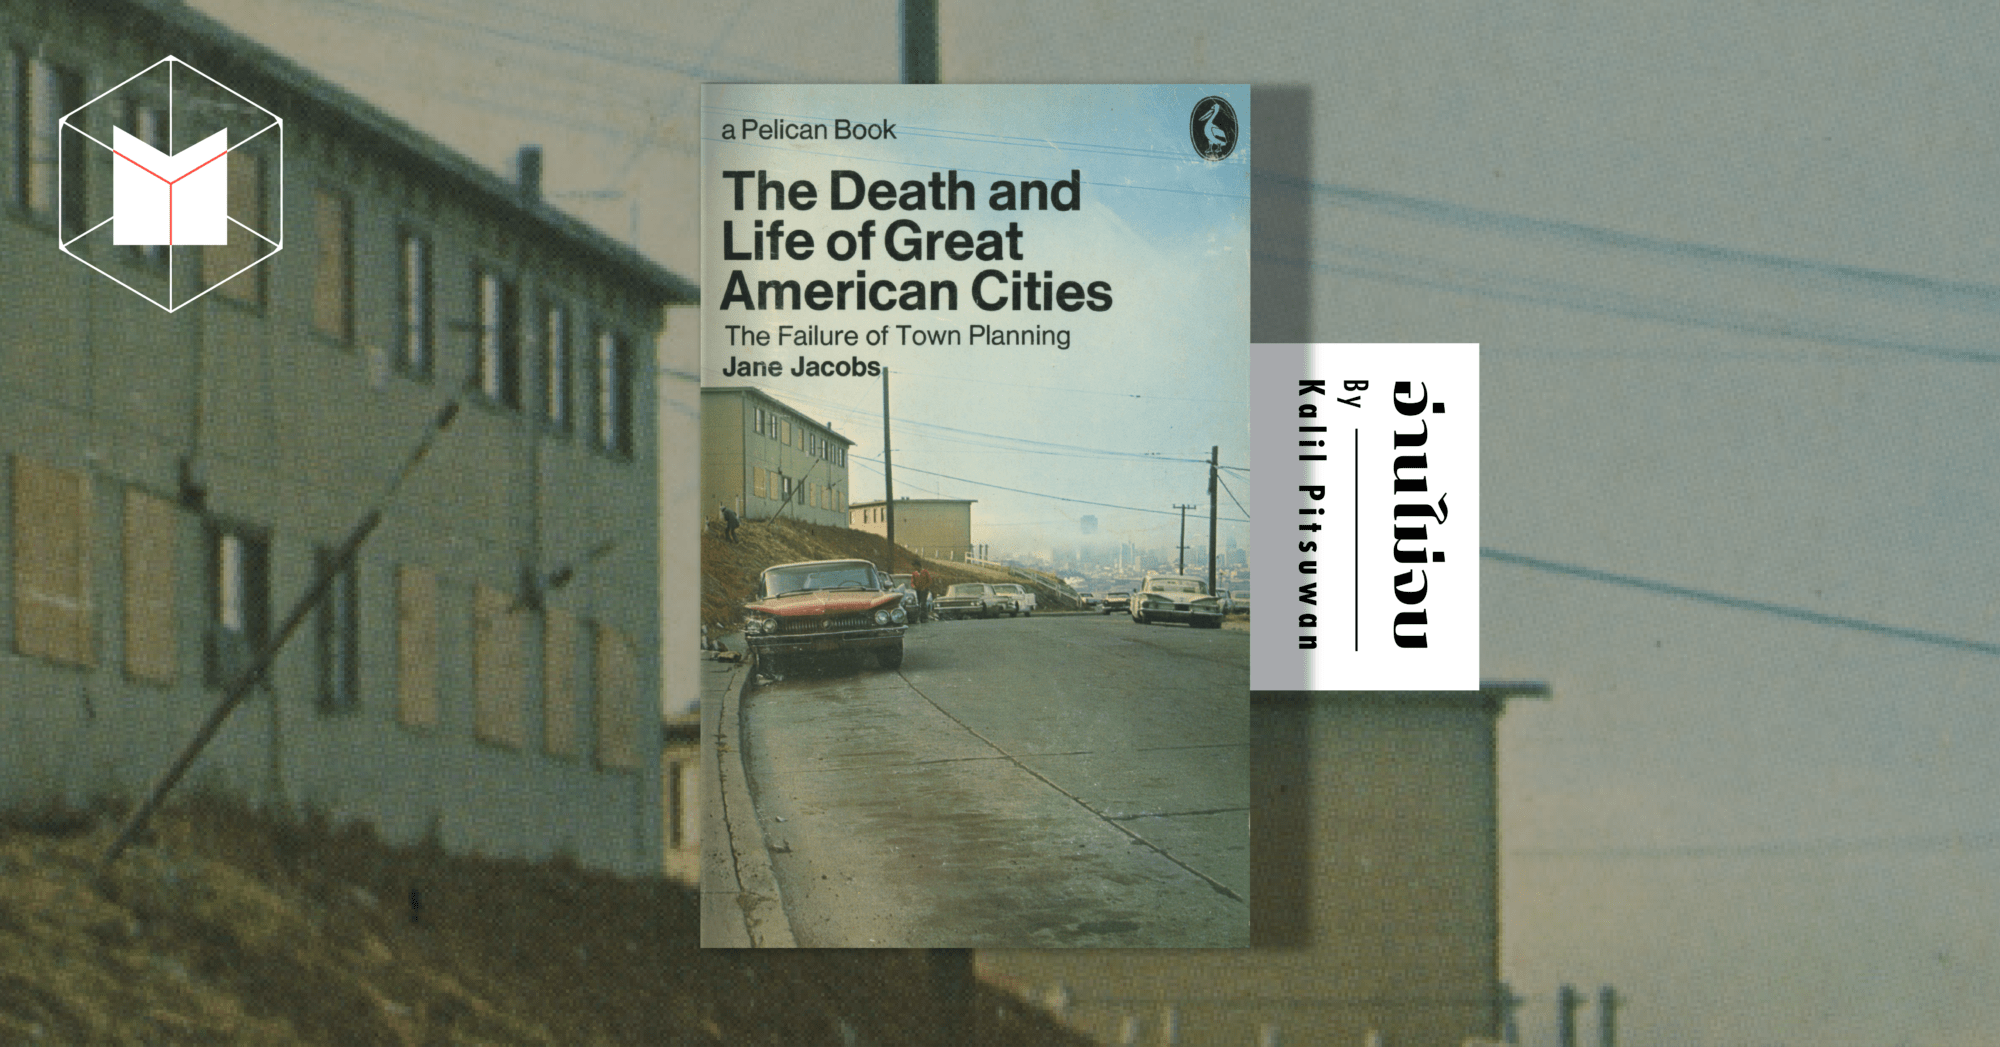 the life and death of great american cities The death and life of great american cities [jane jacobs] -- jane jacobs critiques the comprehensive modernist approach to urban planning after 1945 by the 1950s, various american cities were pursuing ambitious urban renewal policies, influenced by.